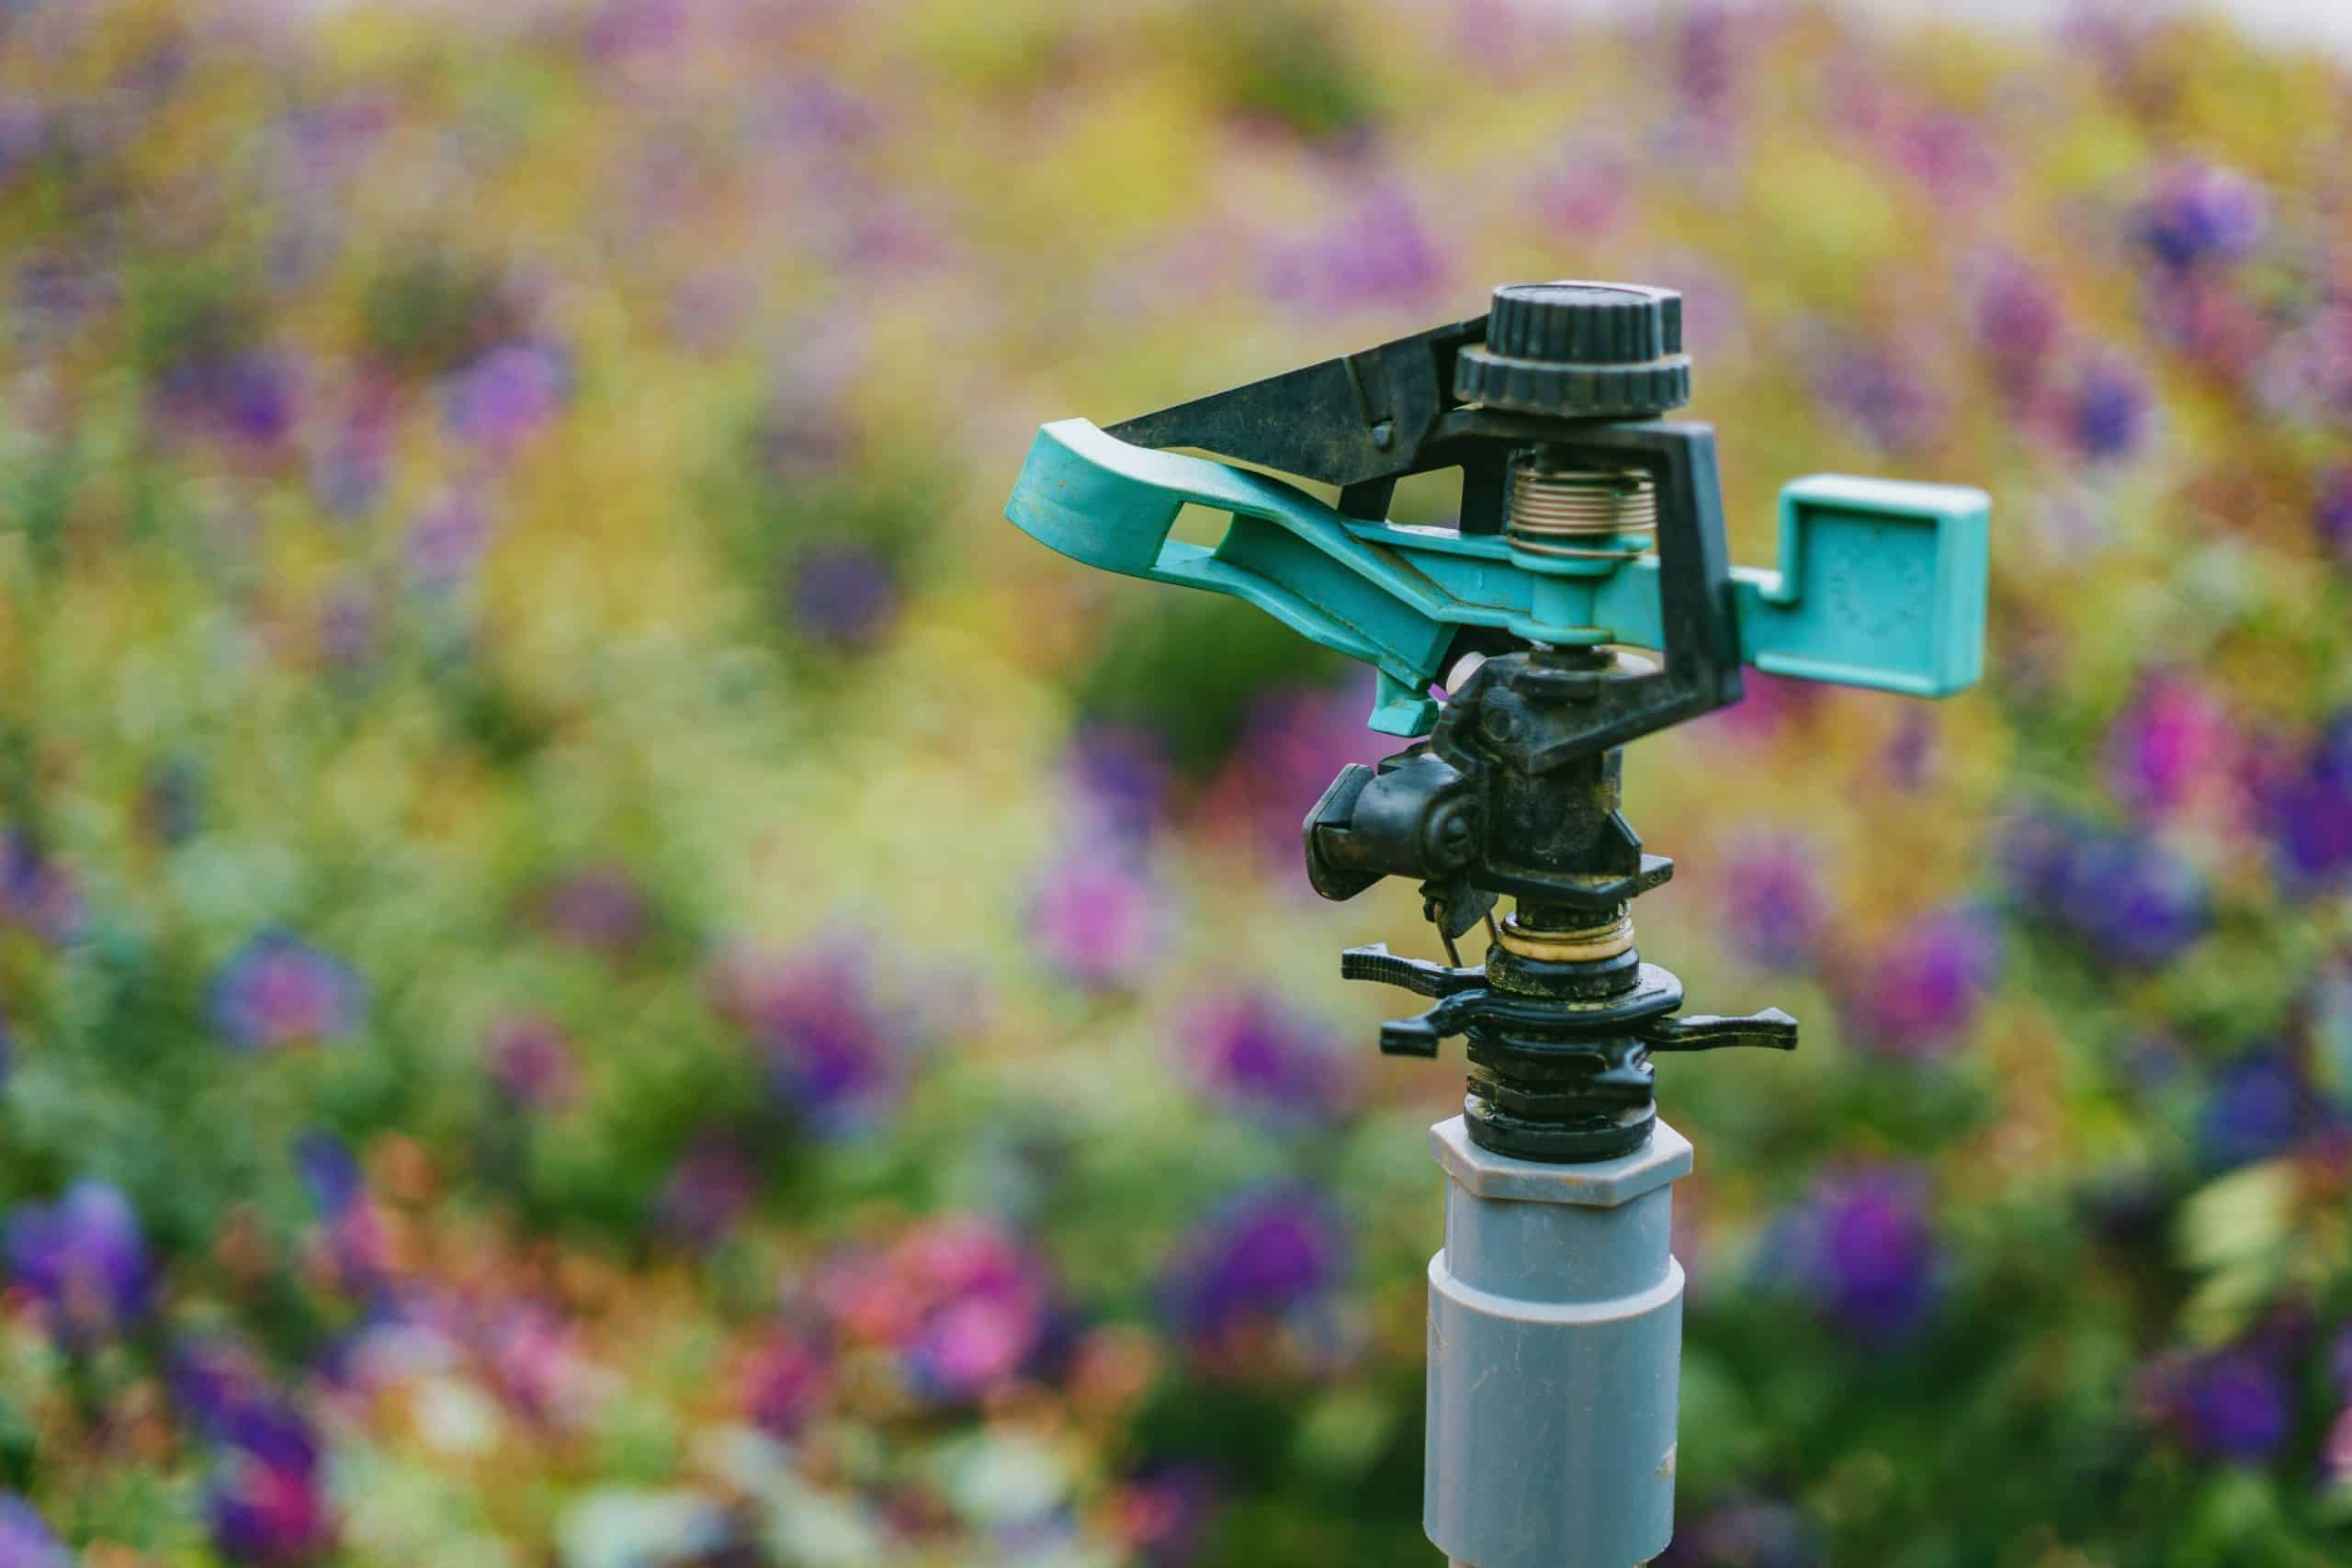 How to Water Your Plants Using an Automatic Sprinkler?